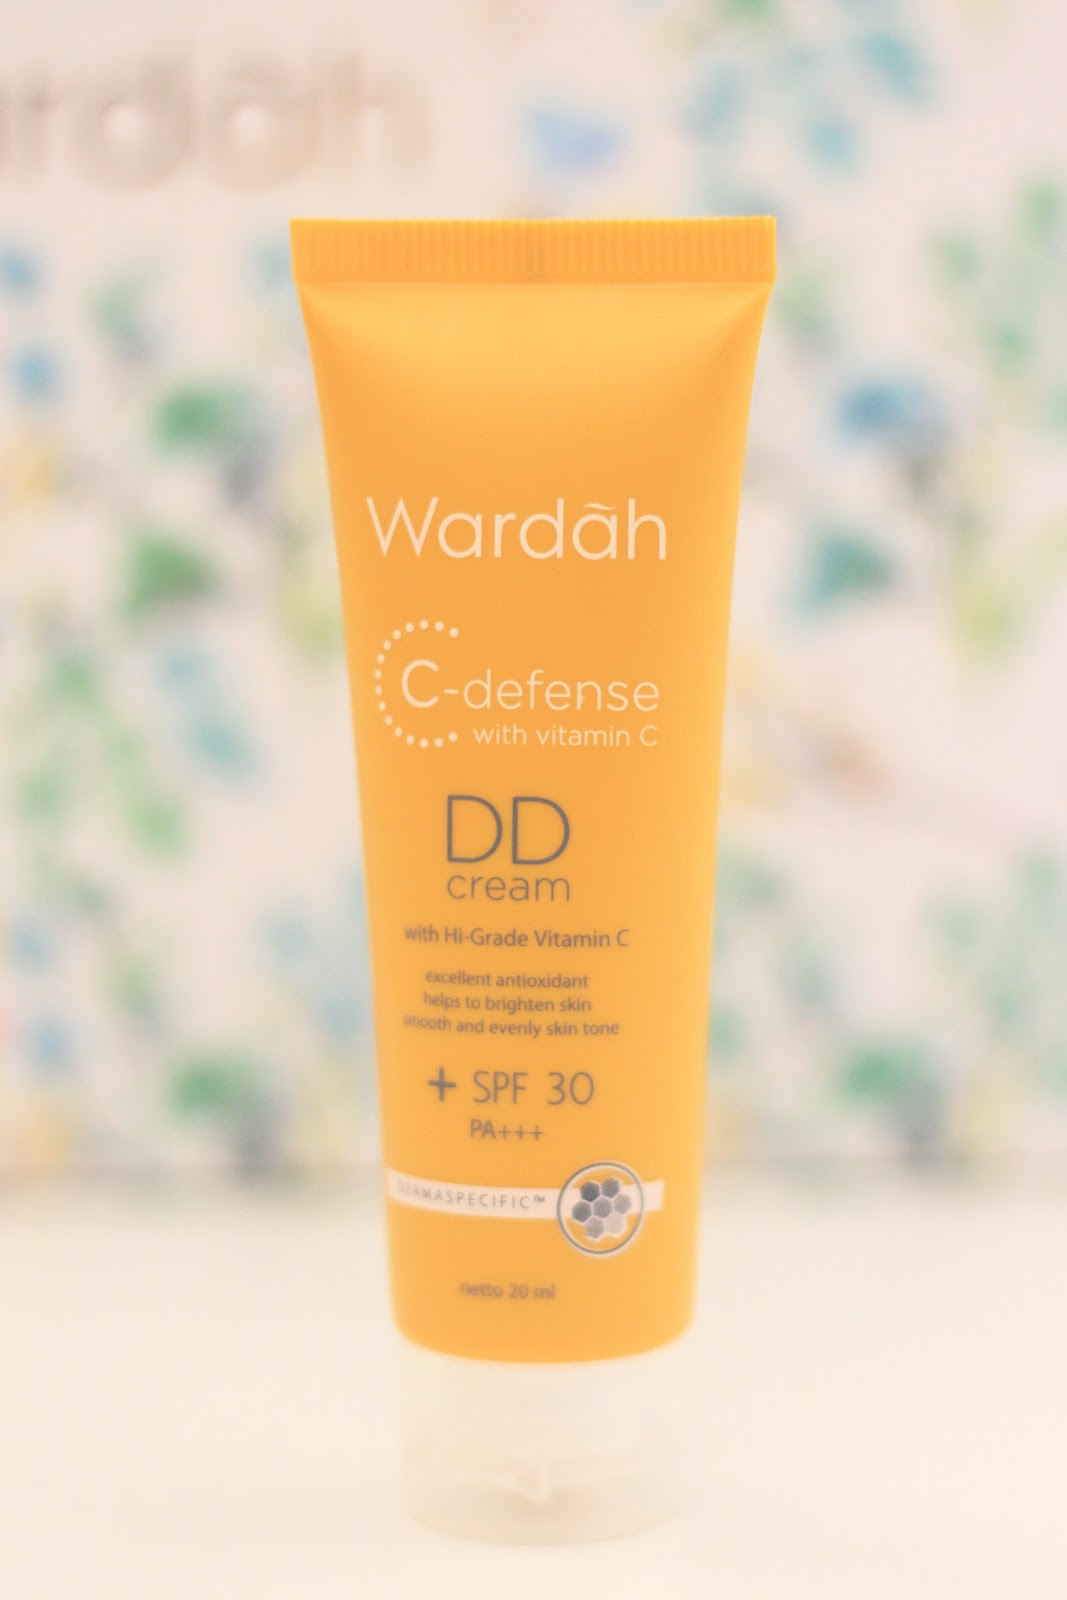 WARDAH C-DEFENSE DD CREAM | www.bigdreamerblog.com